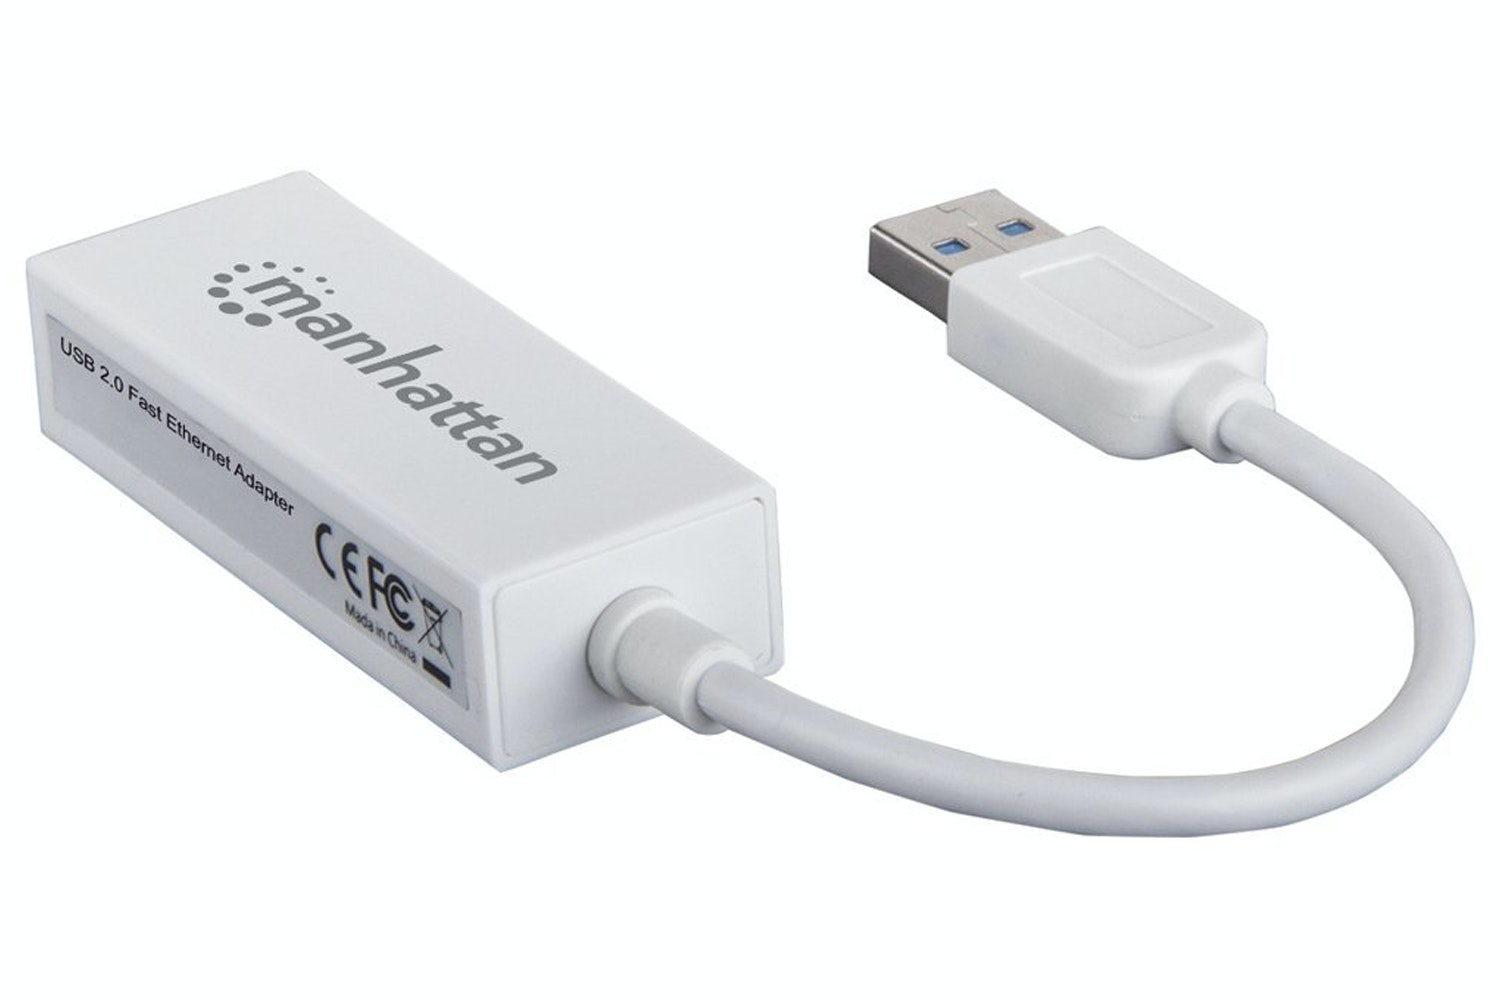 Manhattan USB 2.0 Fast Ethernet Adapter